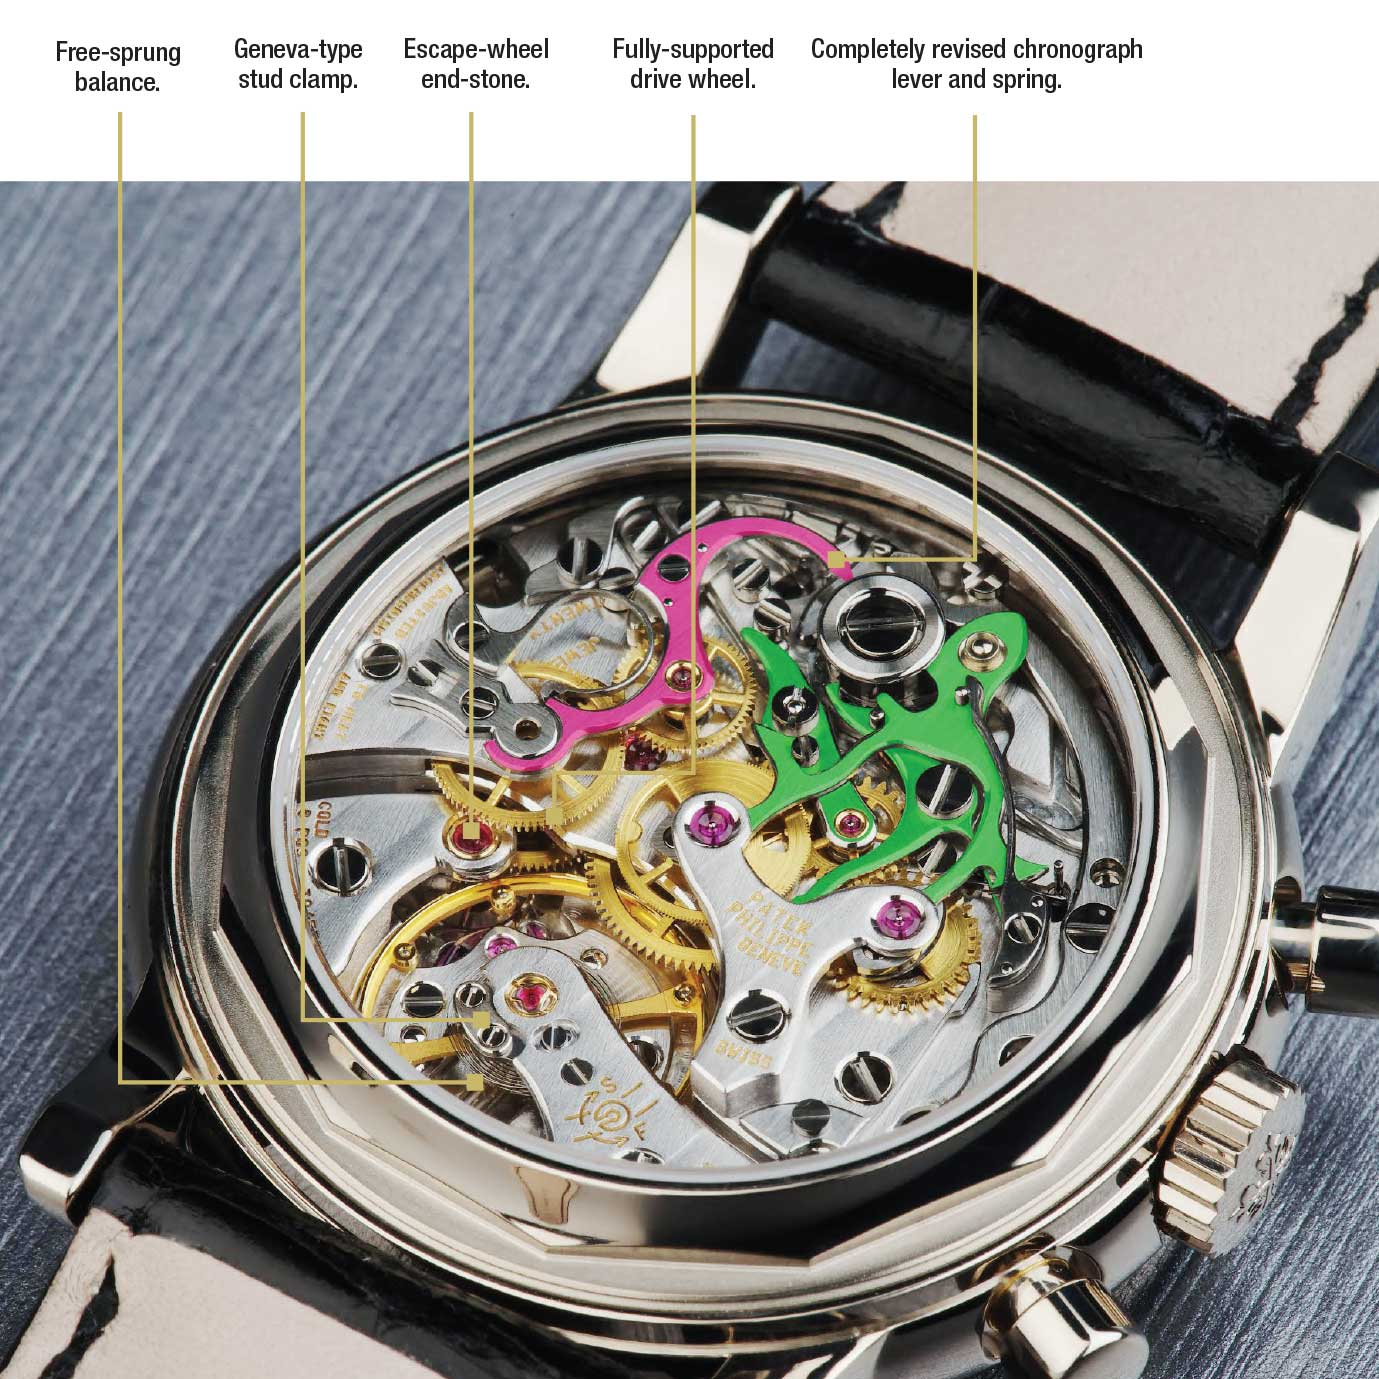 Patek's take on the Lemania CH 27, the CH27-70 Q seen here used in ref. 3970